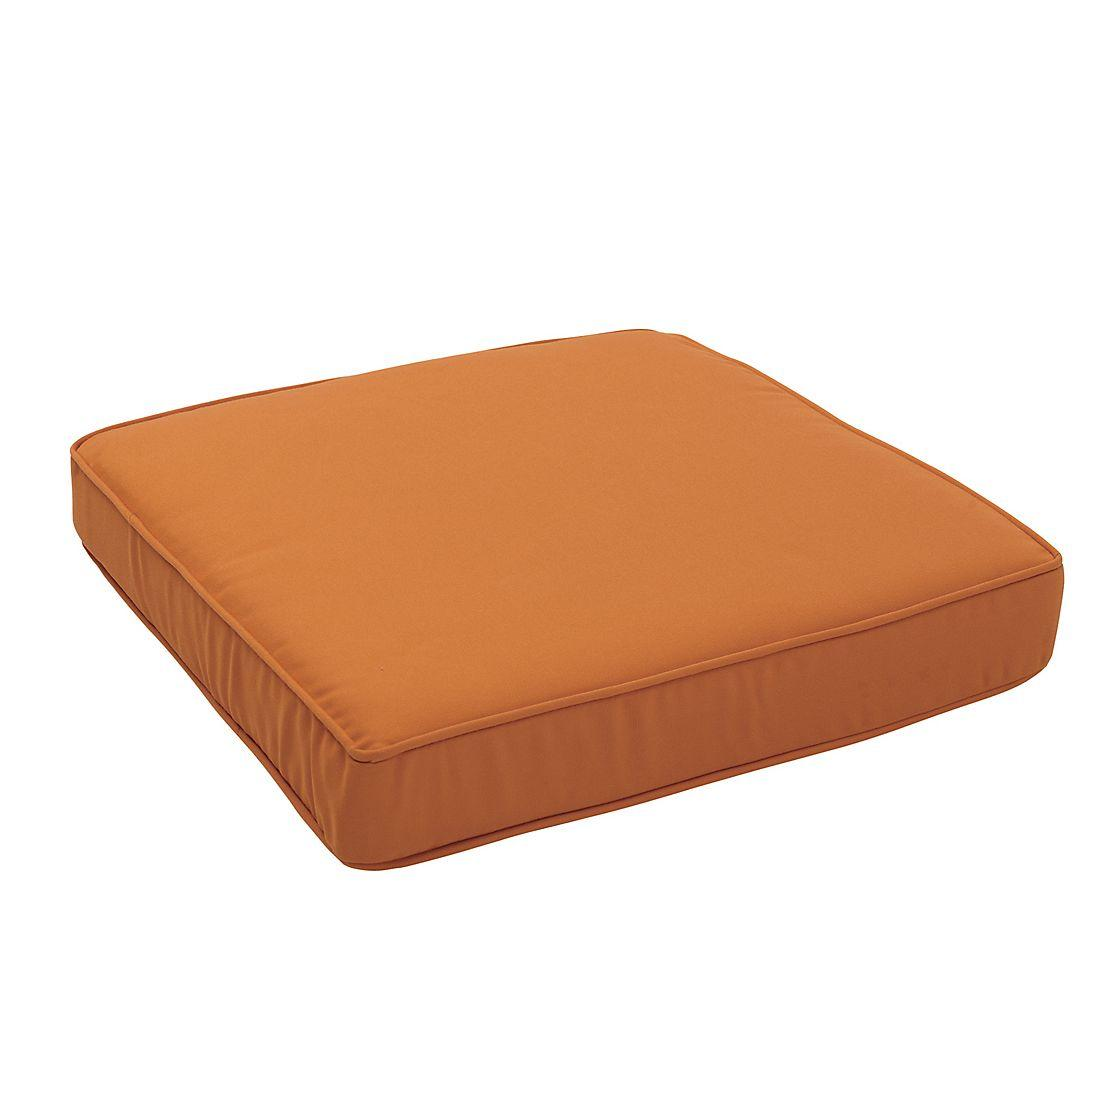 Sunbrella Deep Seat Cushions | Sunbrella Seat Cushions | Replacement Sunbrella Cushion Covers